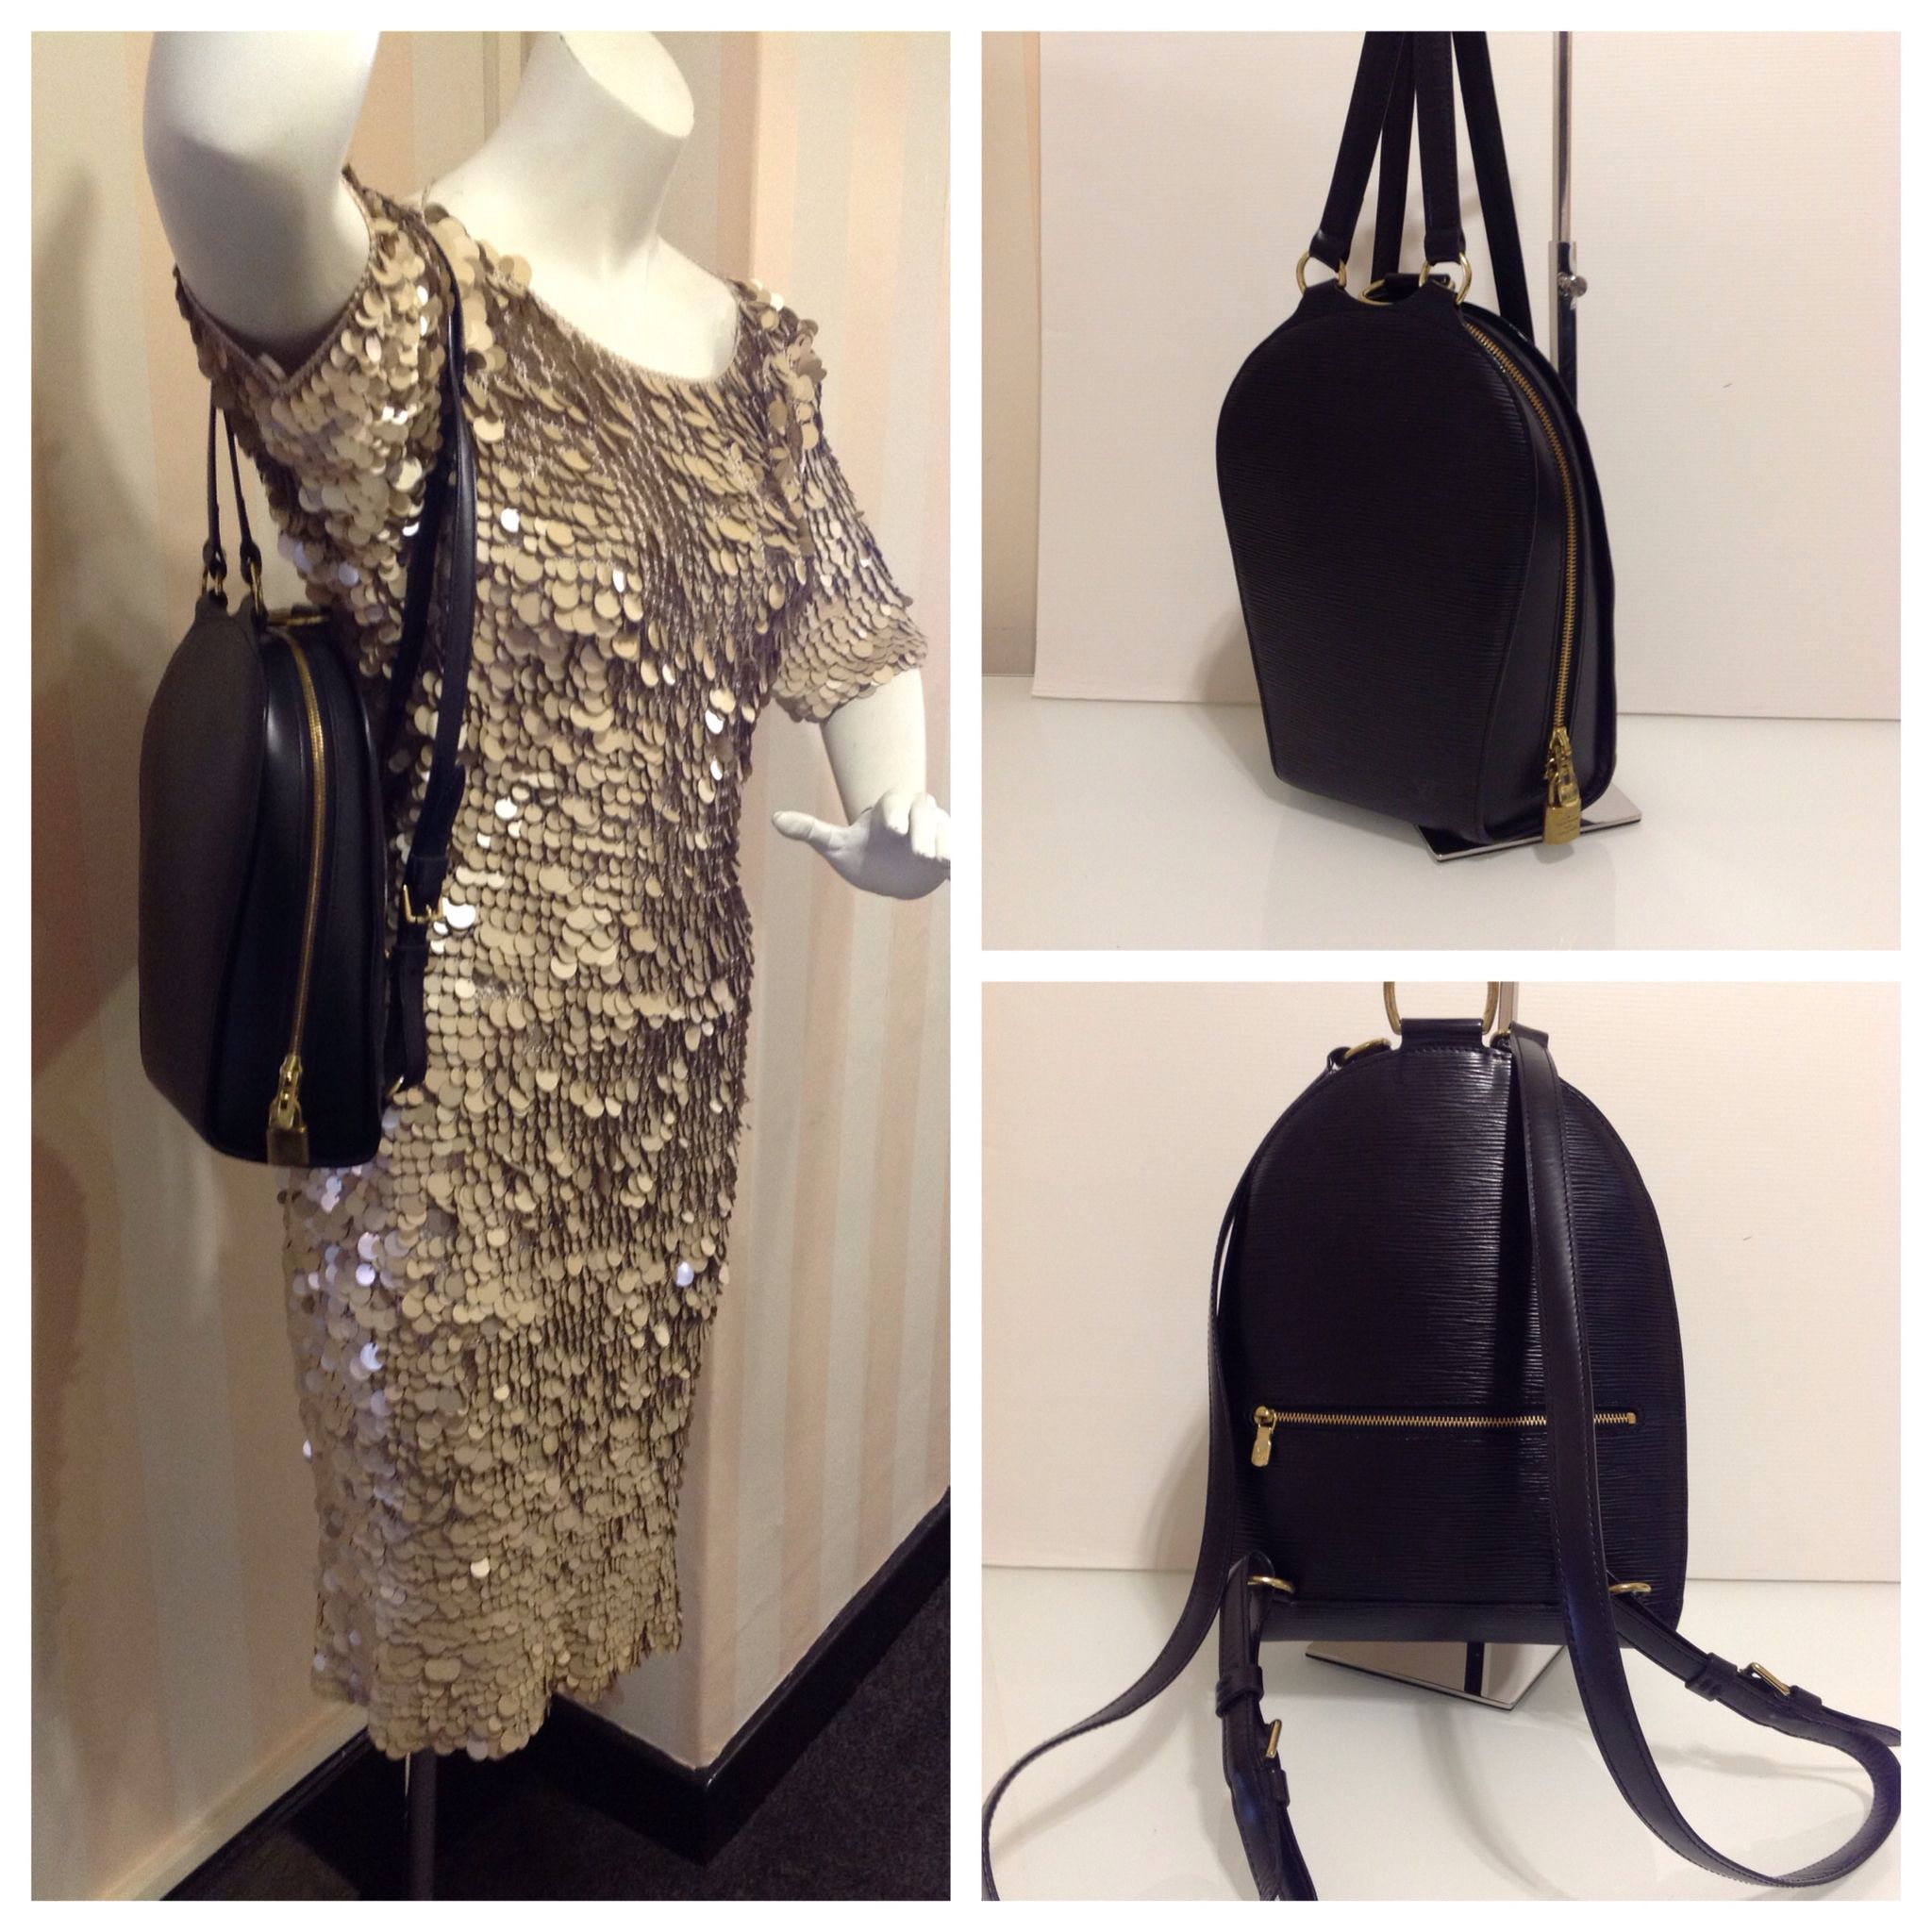 Authentic Louis Vuitton Rare Black Epi Leather Mabillon Backpack with Dust  Bag £449 This is 8fcfaee4e2a89